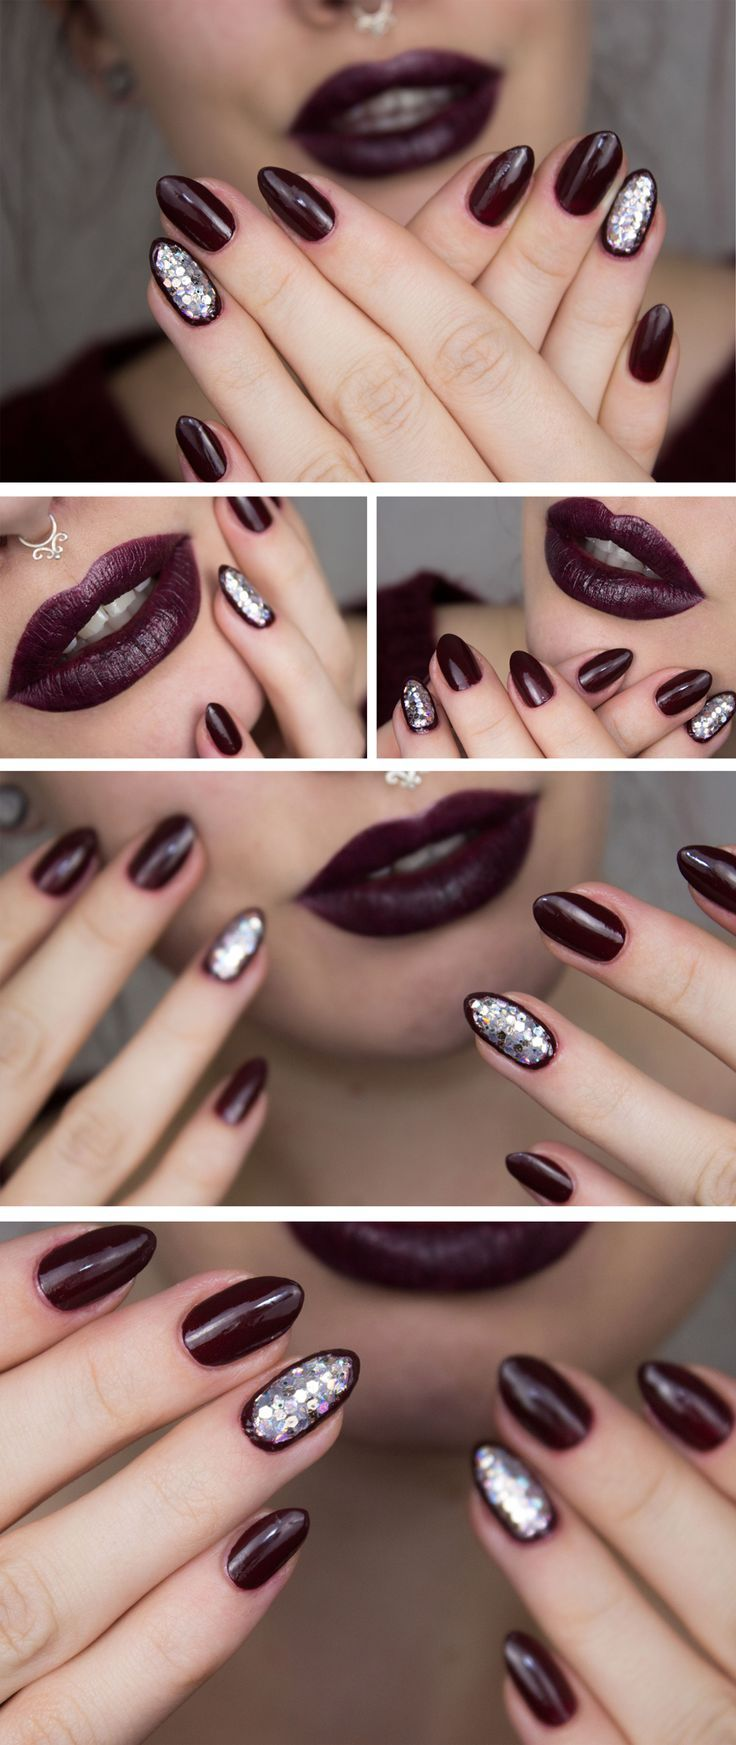 Maroon nails with silver ring accent